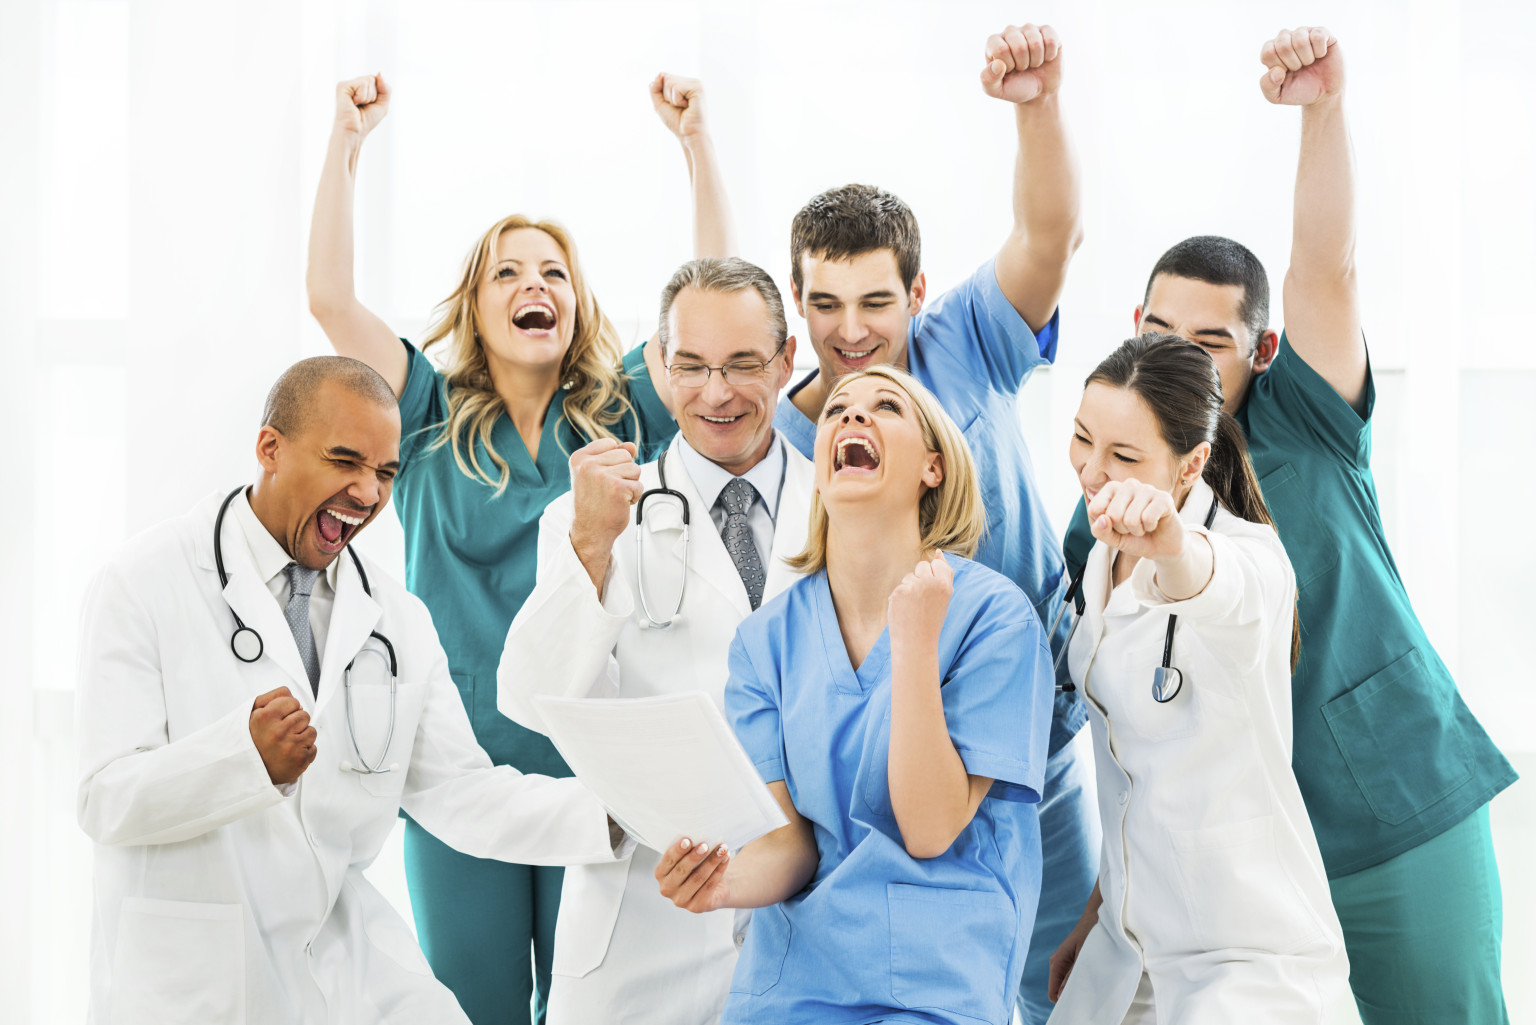 Ecstatic group of doctors.